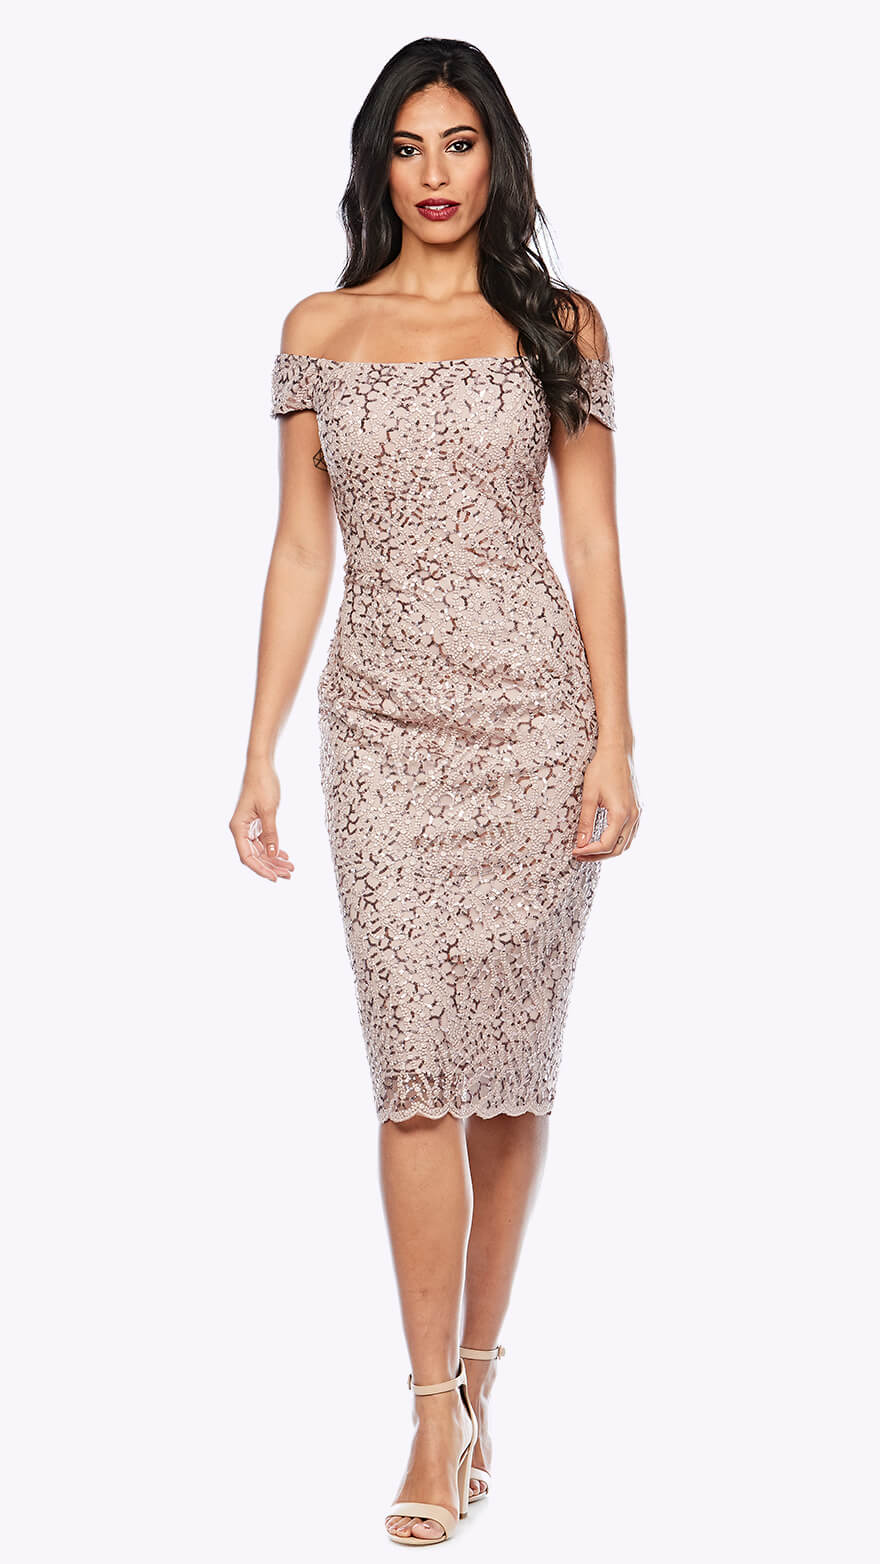 Z0192 Off the shoulder cocktail dress with scalloped hemline in sequinned lace